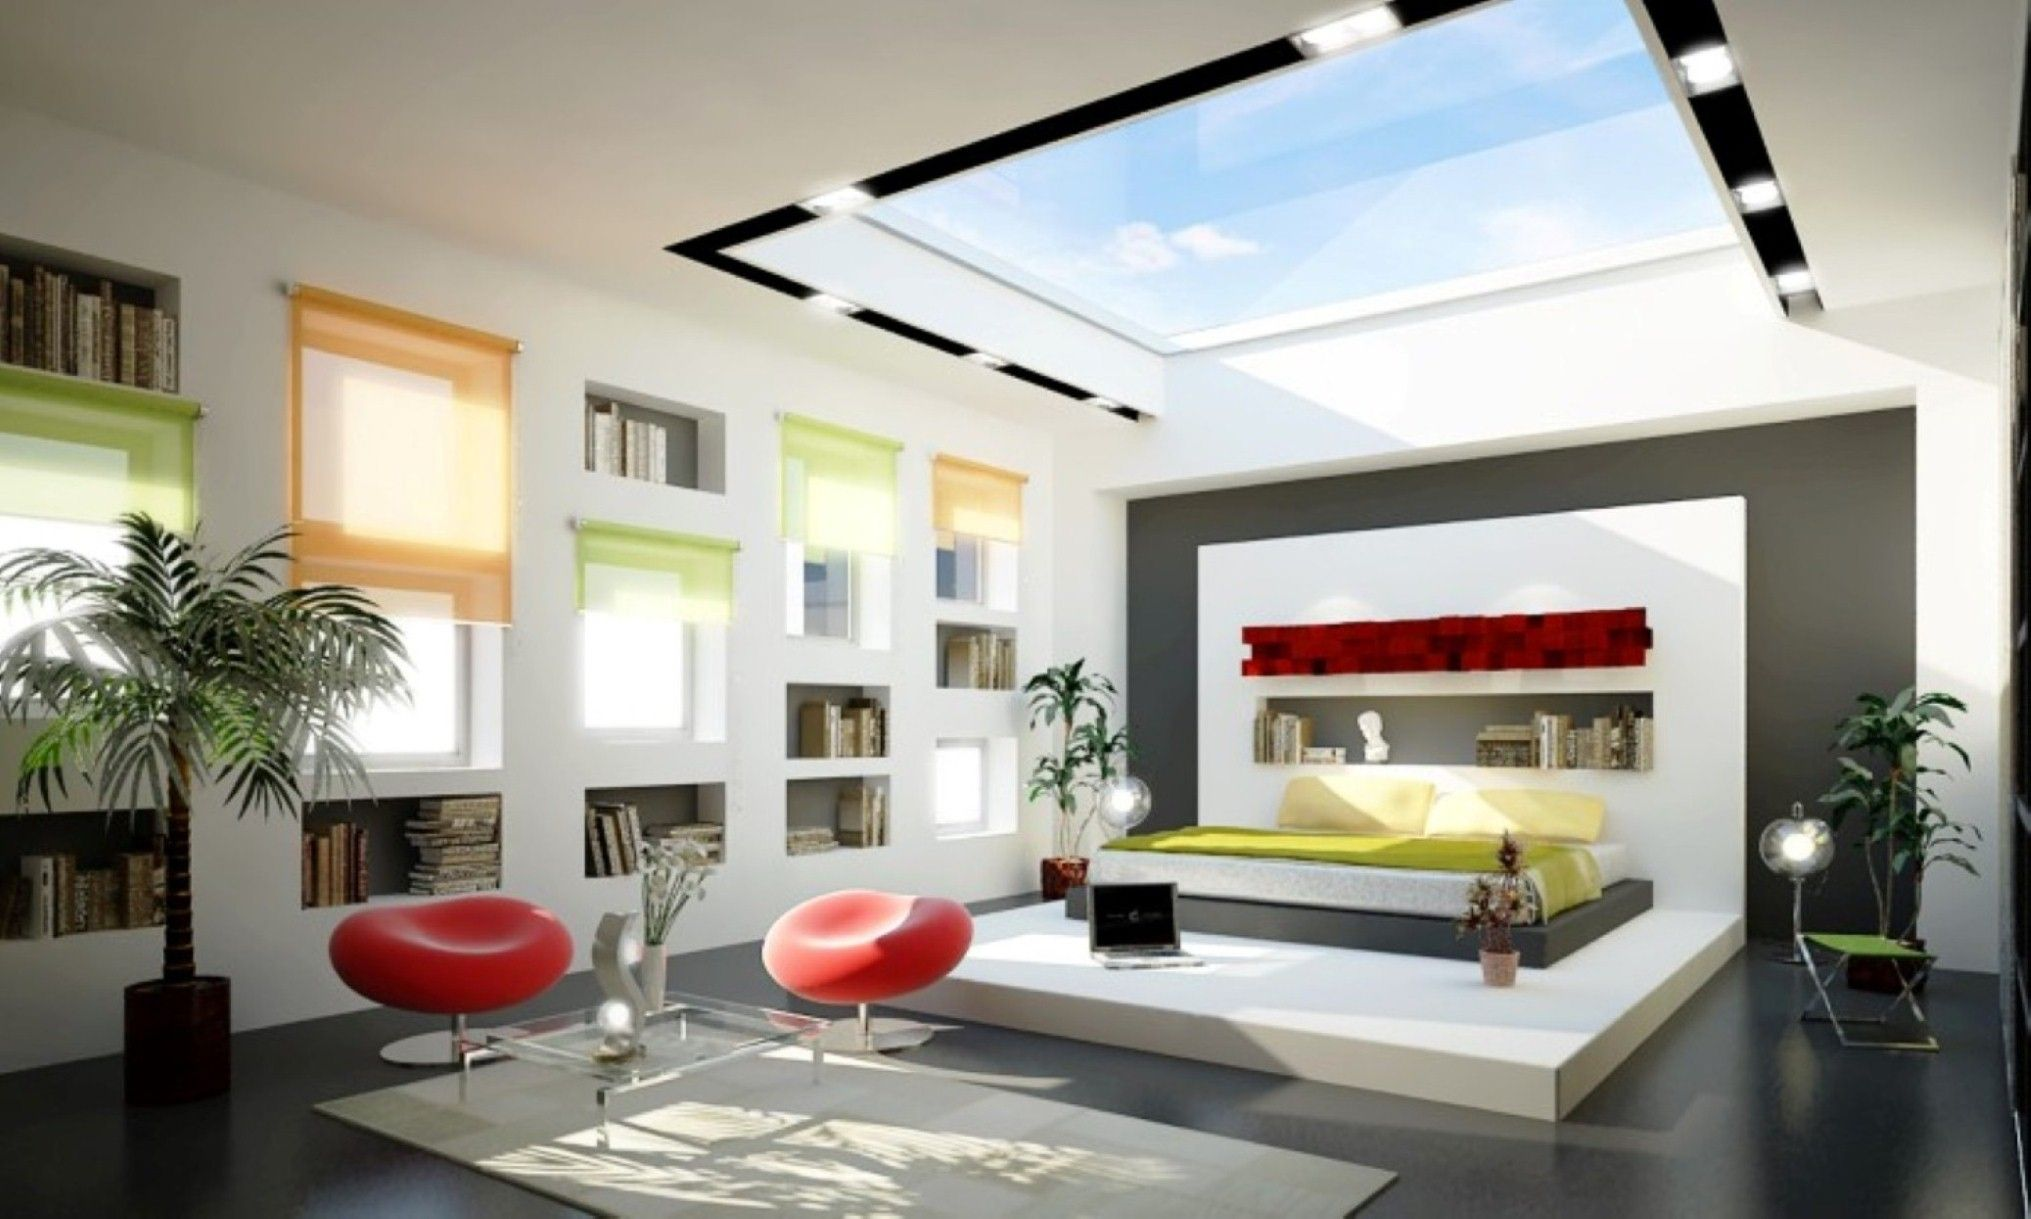 Natural Red Swivel Chairs And Wall Niche Bookshelves Feat Glass